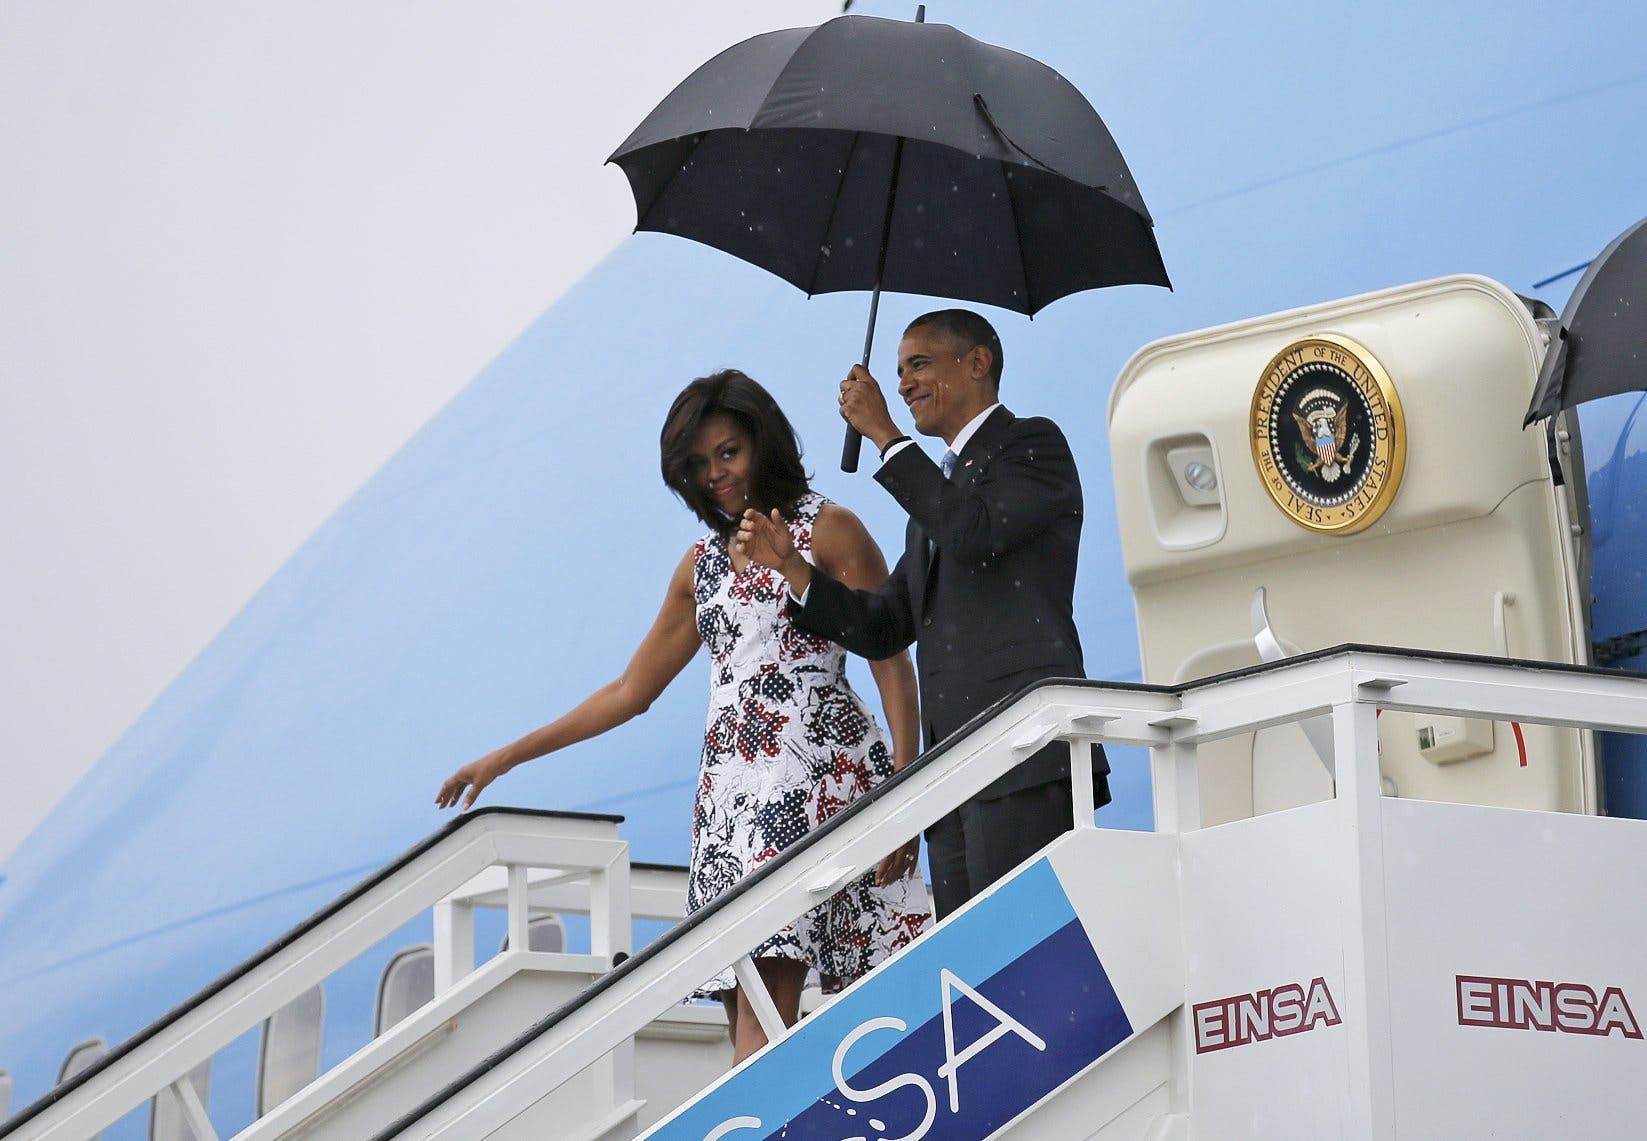 U.S. President Barack Obama and his wife Michelle exit Air Force One as they arrive at Havana's international airport for a three-day trip, in Havana March 20, 2016.  reuters